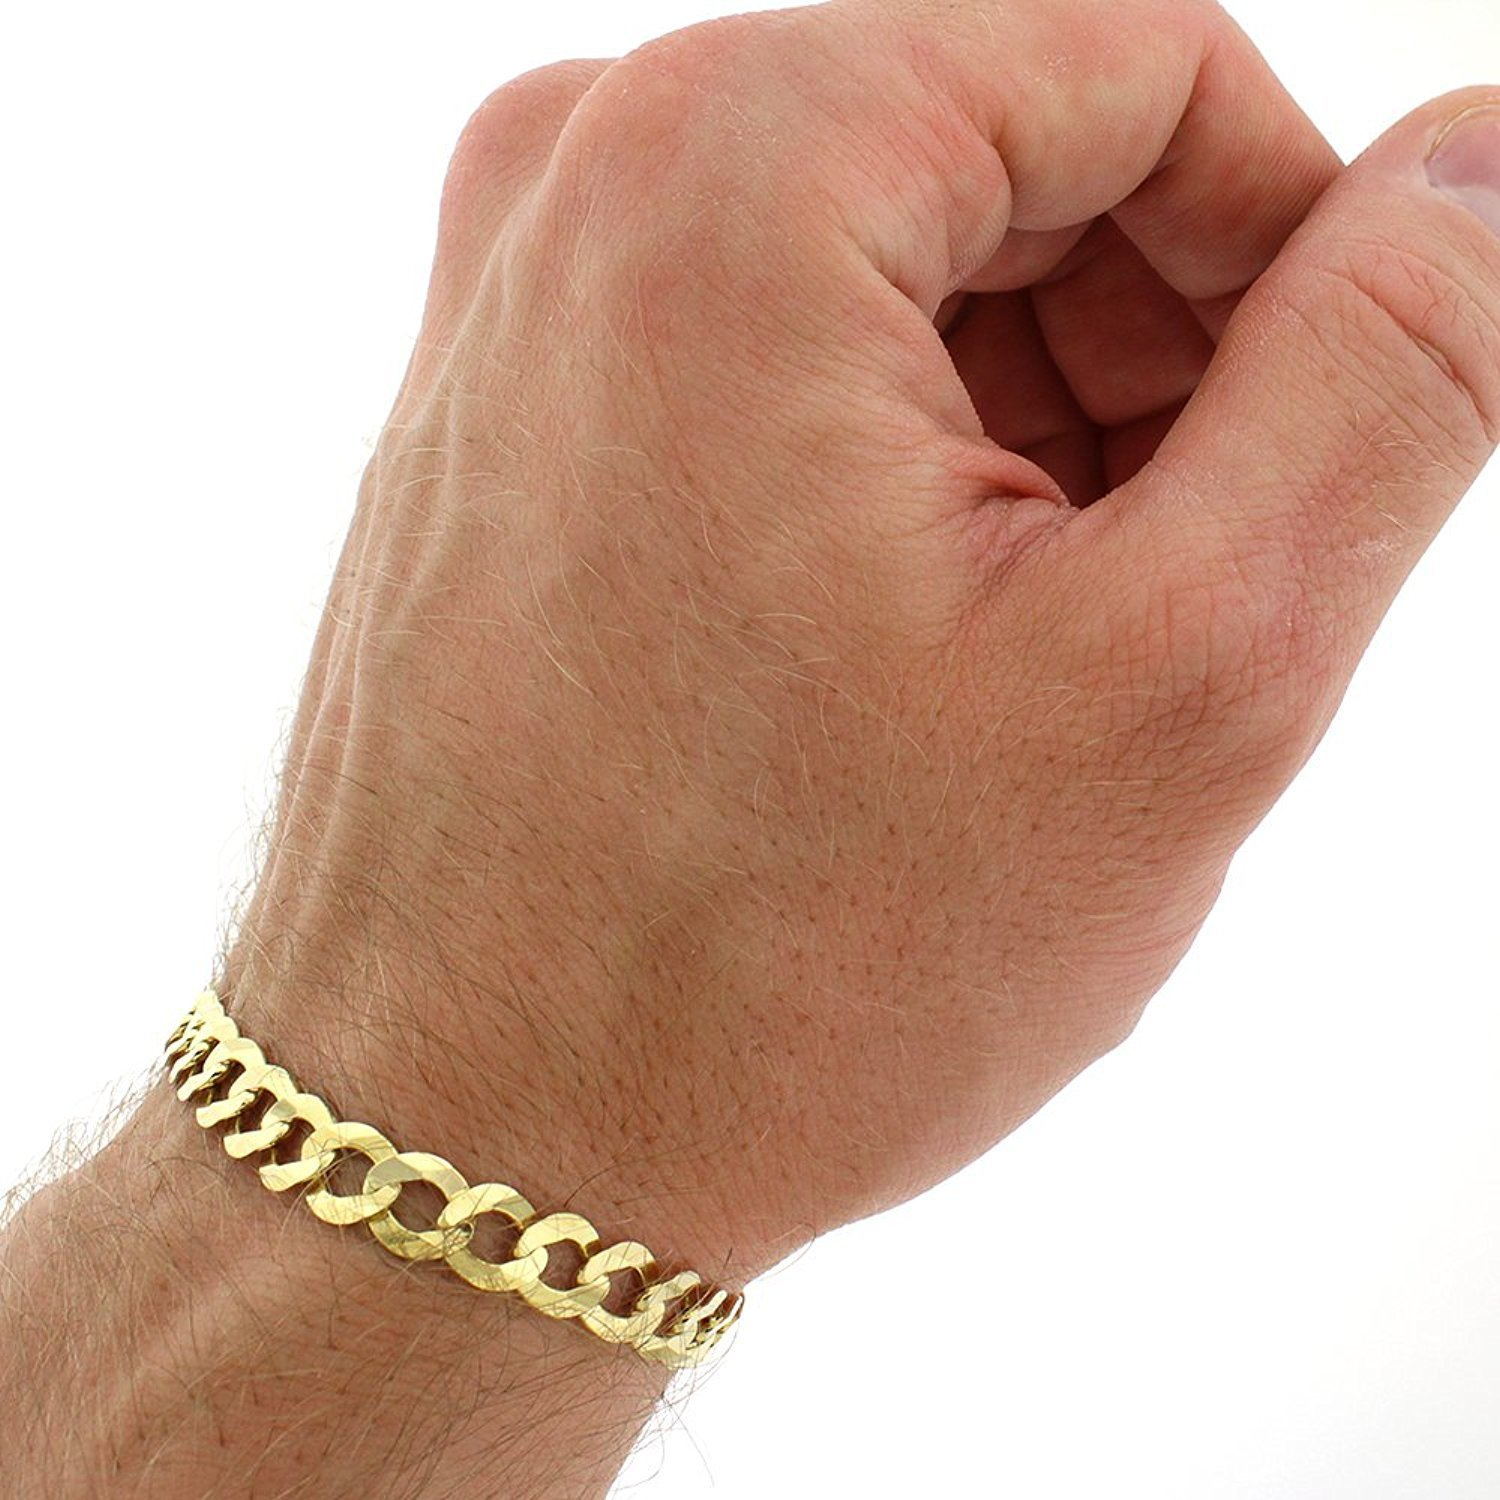 14k Yellow Gold 7mm Solid Cuban Curb Link Bracelet Chain 8'', 8.5'', 9'' (8.5) by In Style Designz (Image #2)